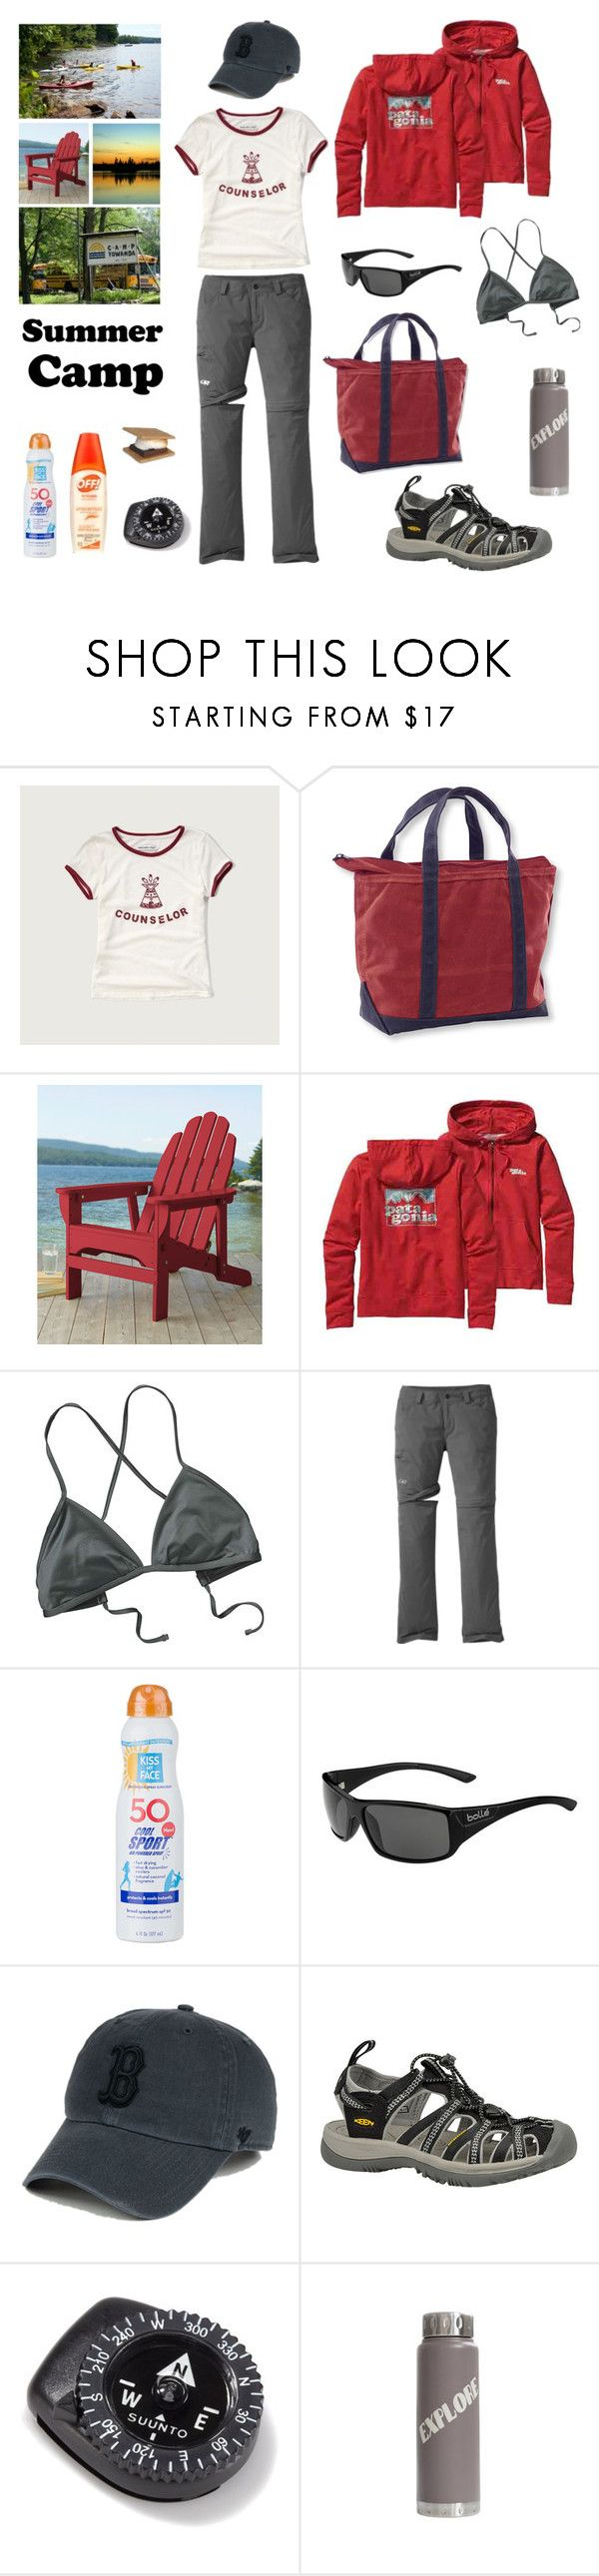 """""""Summer Camp"""" by jhosszu-i ❤ liked on Polyvore featuring Abercrombie & Fitch, L.L.Bean, Patagonia, Outdoor Research, Kiss My Face, Bolle, '47 Brand, Keen Footwear, Suunto and summercamp"""